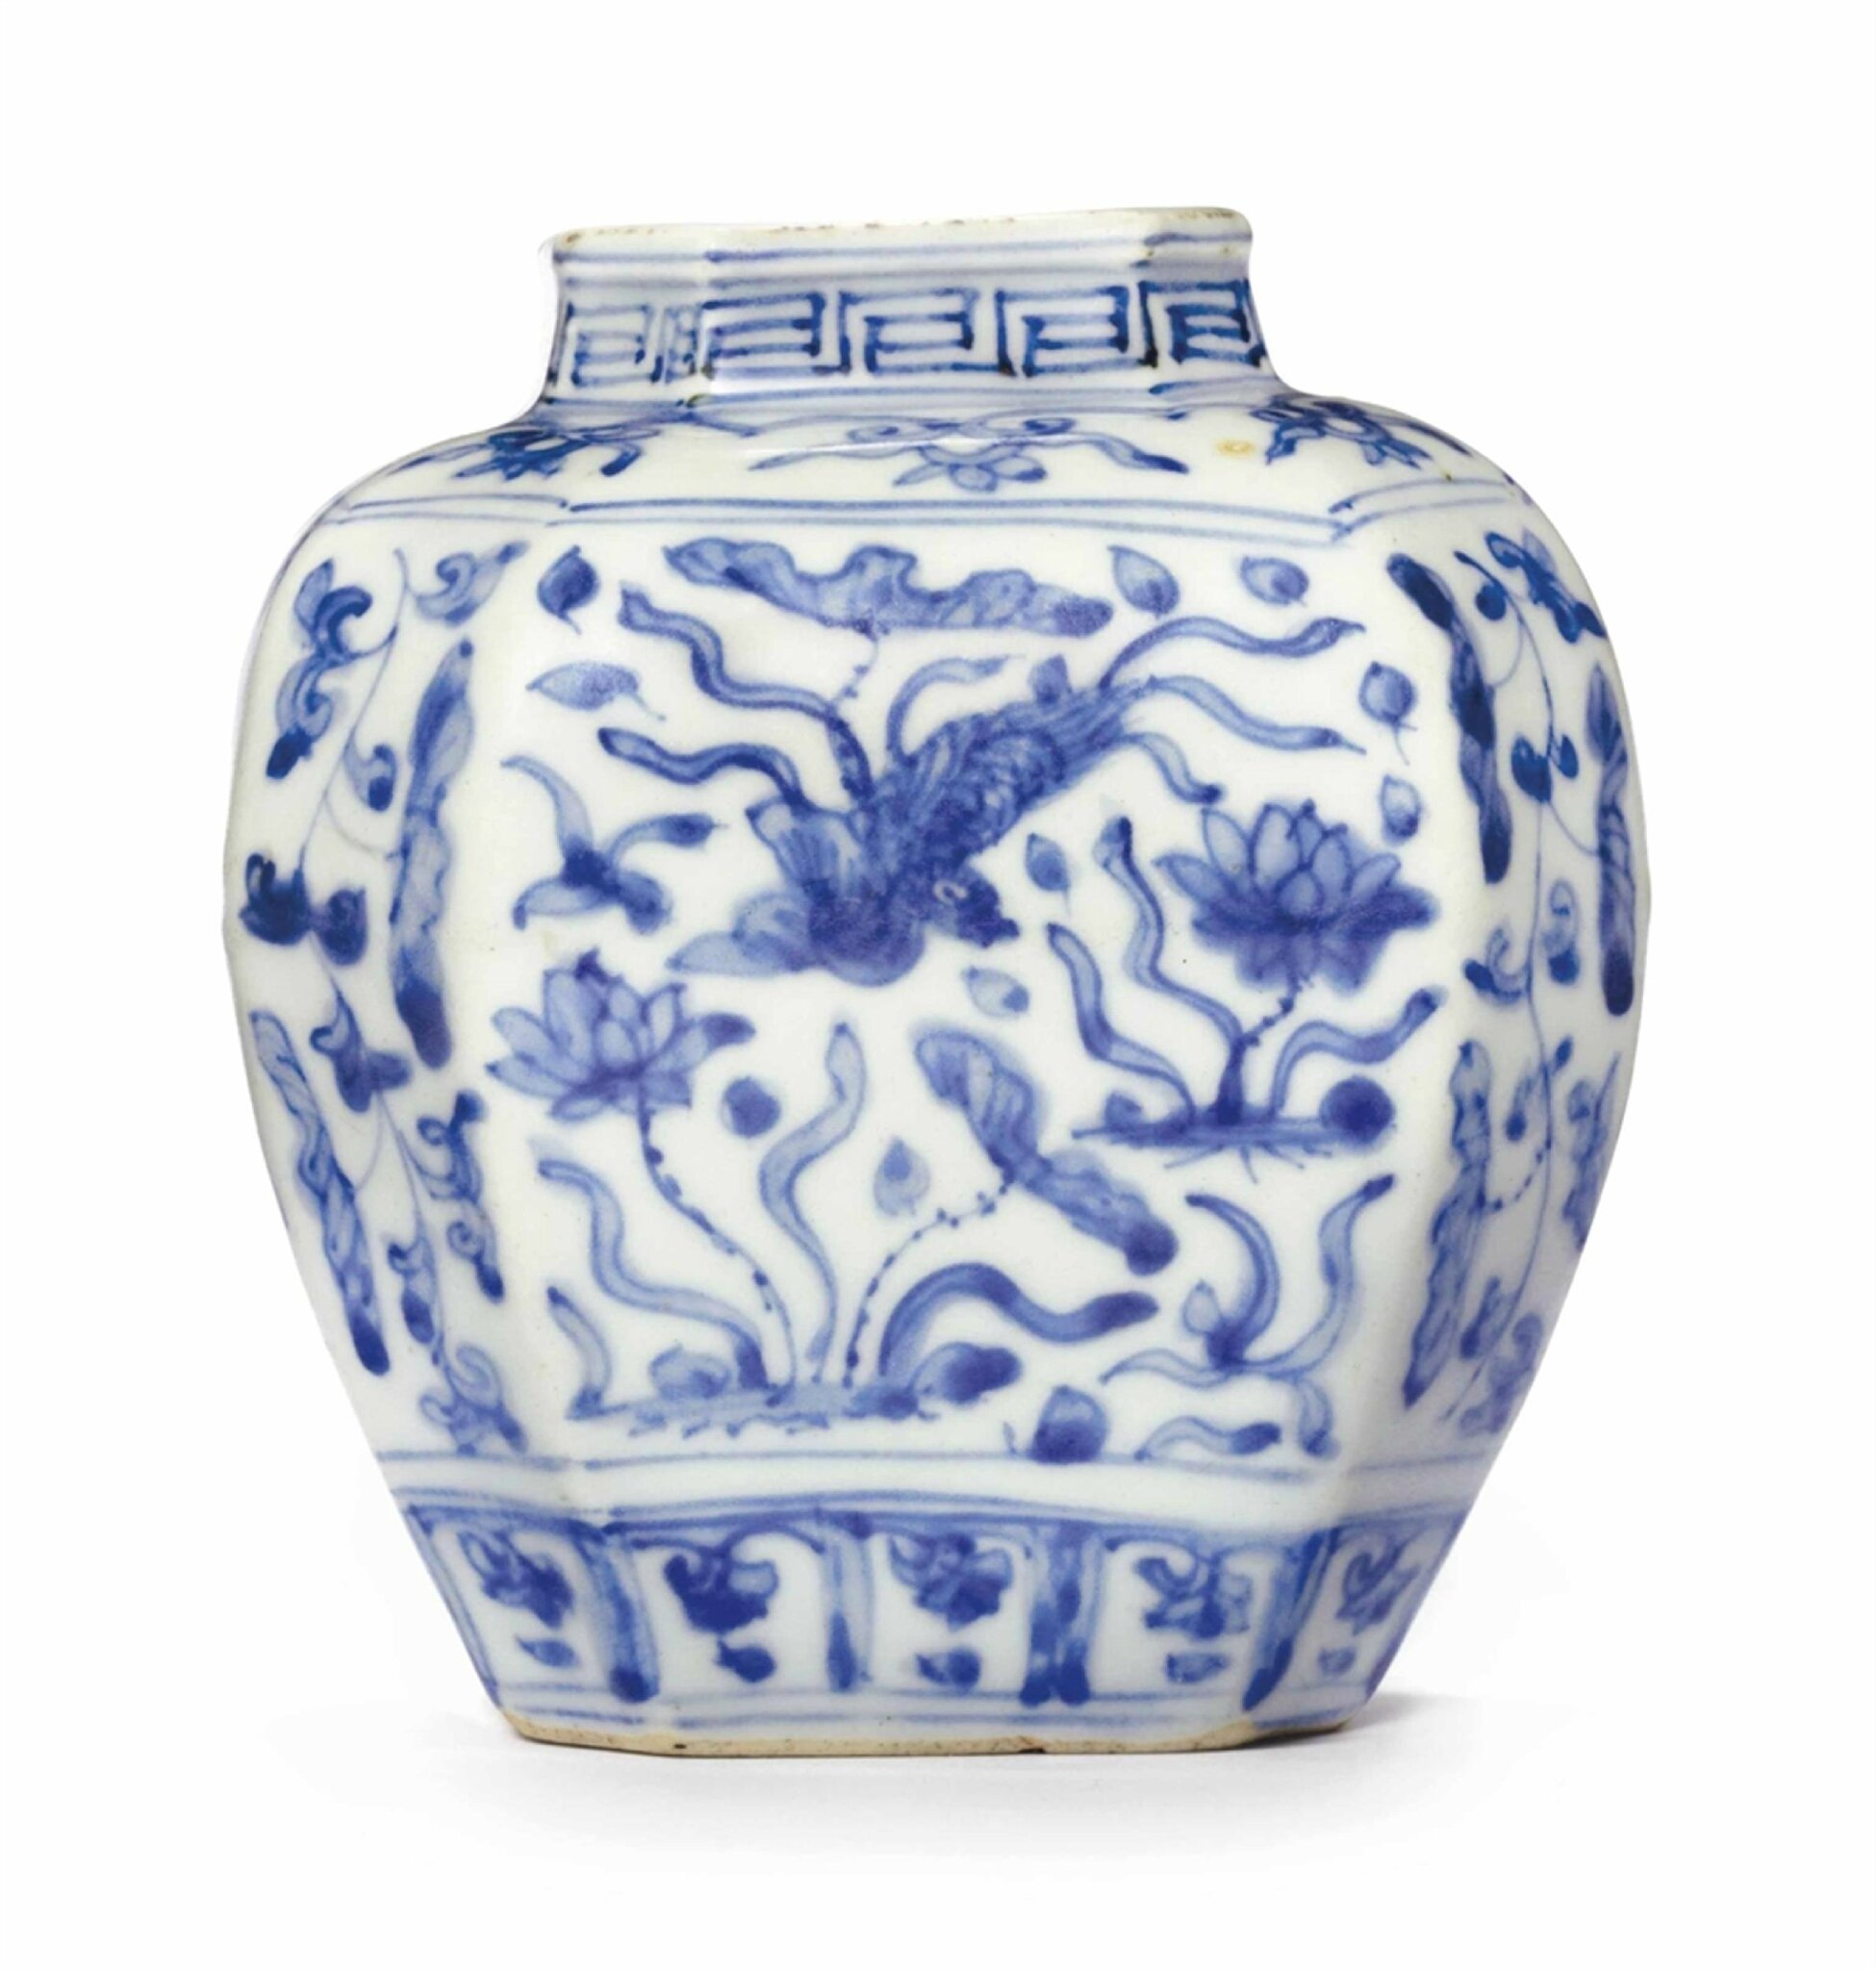 A small blue and white, faceted jar, Ming Dynasty, 16th century